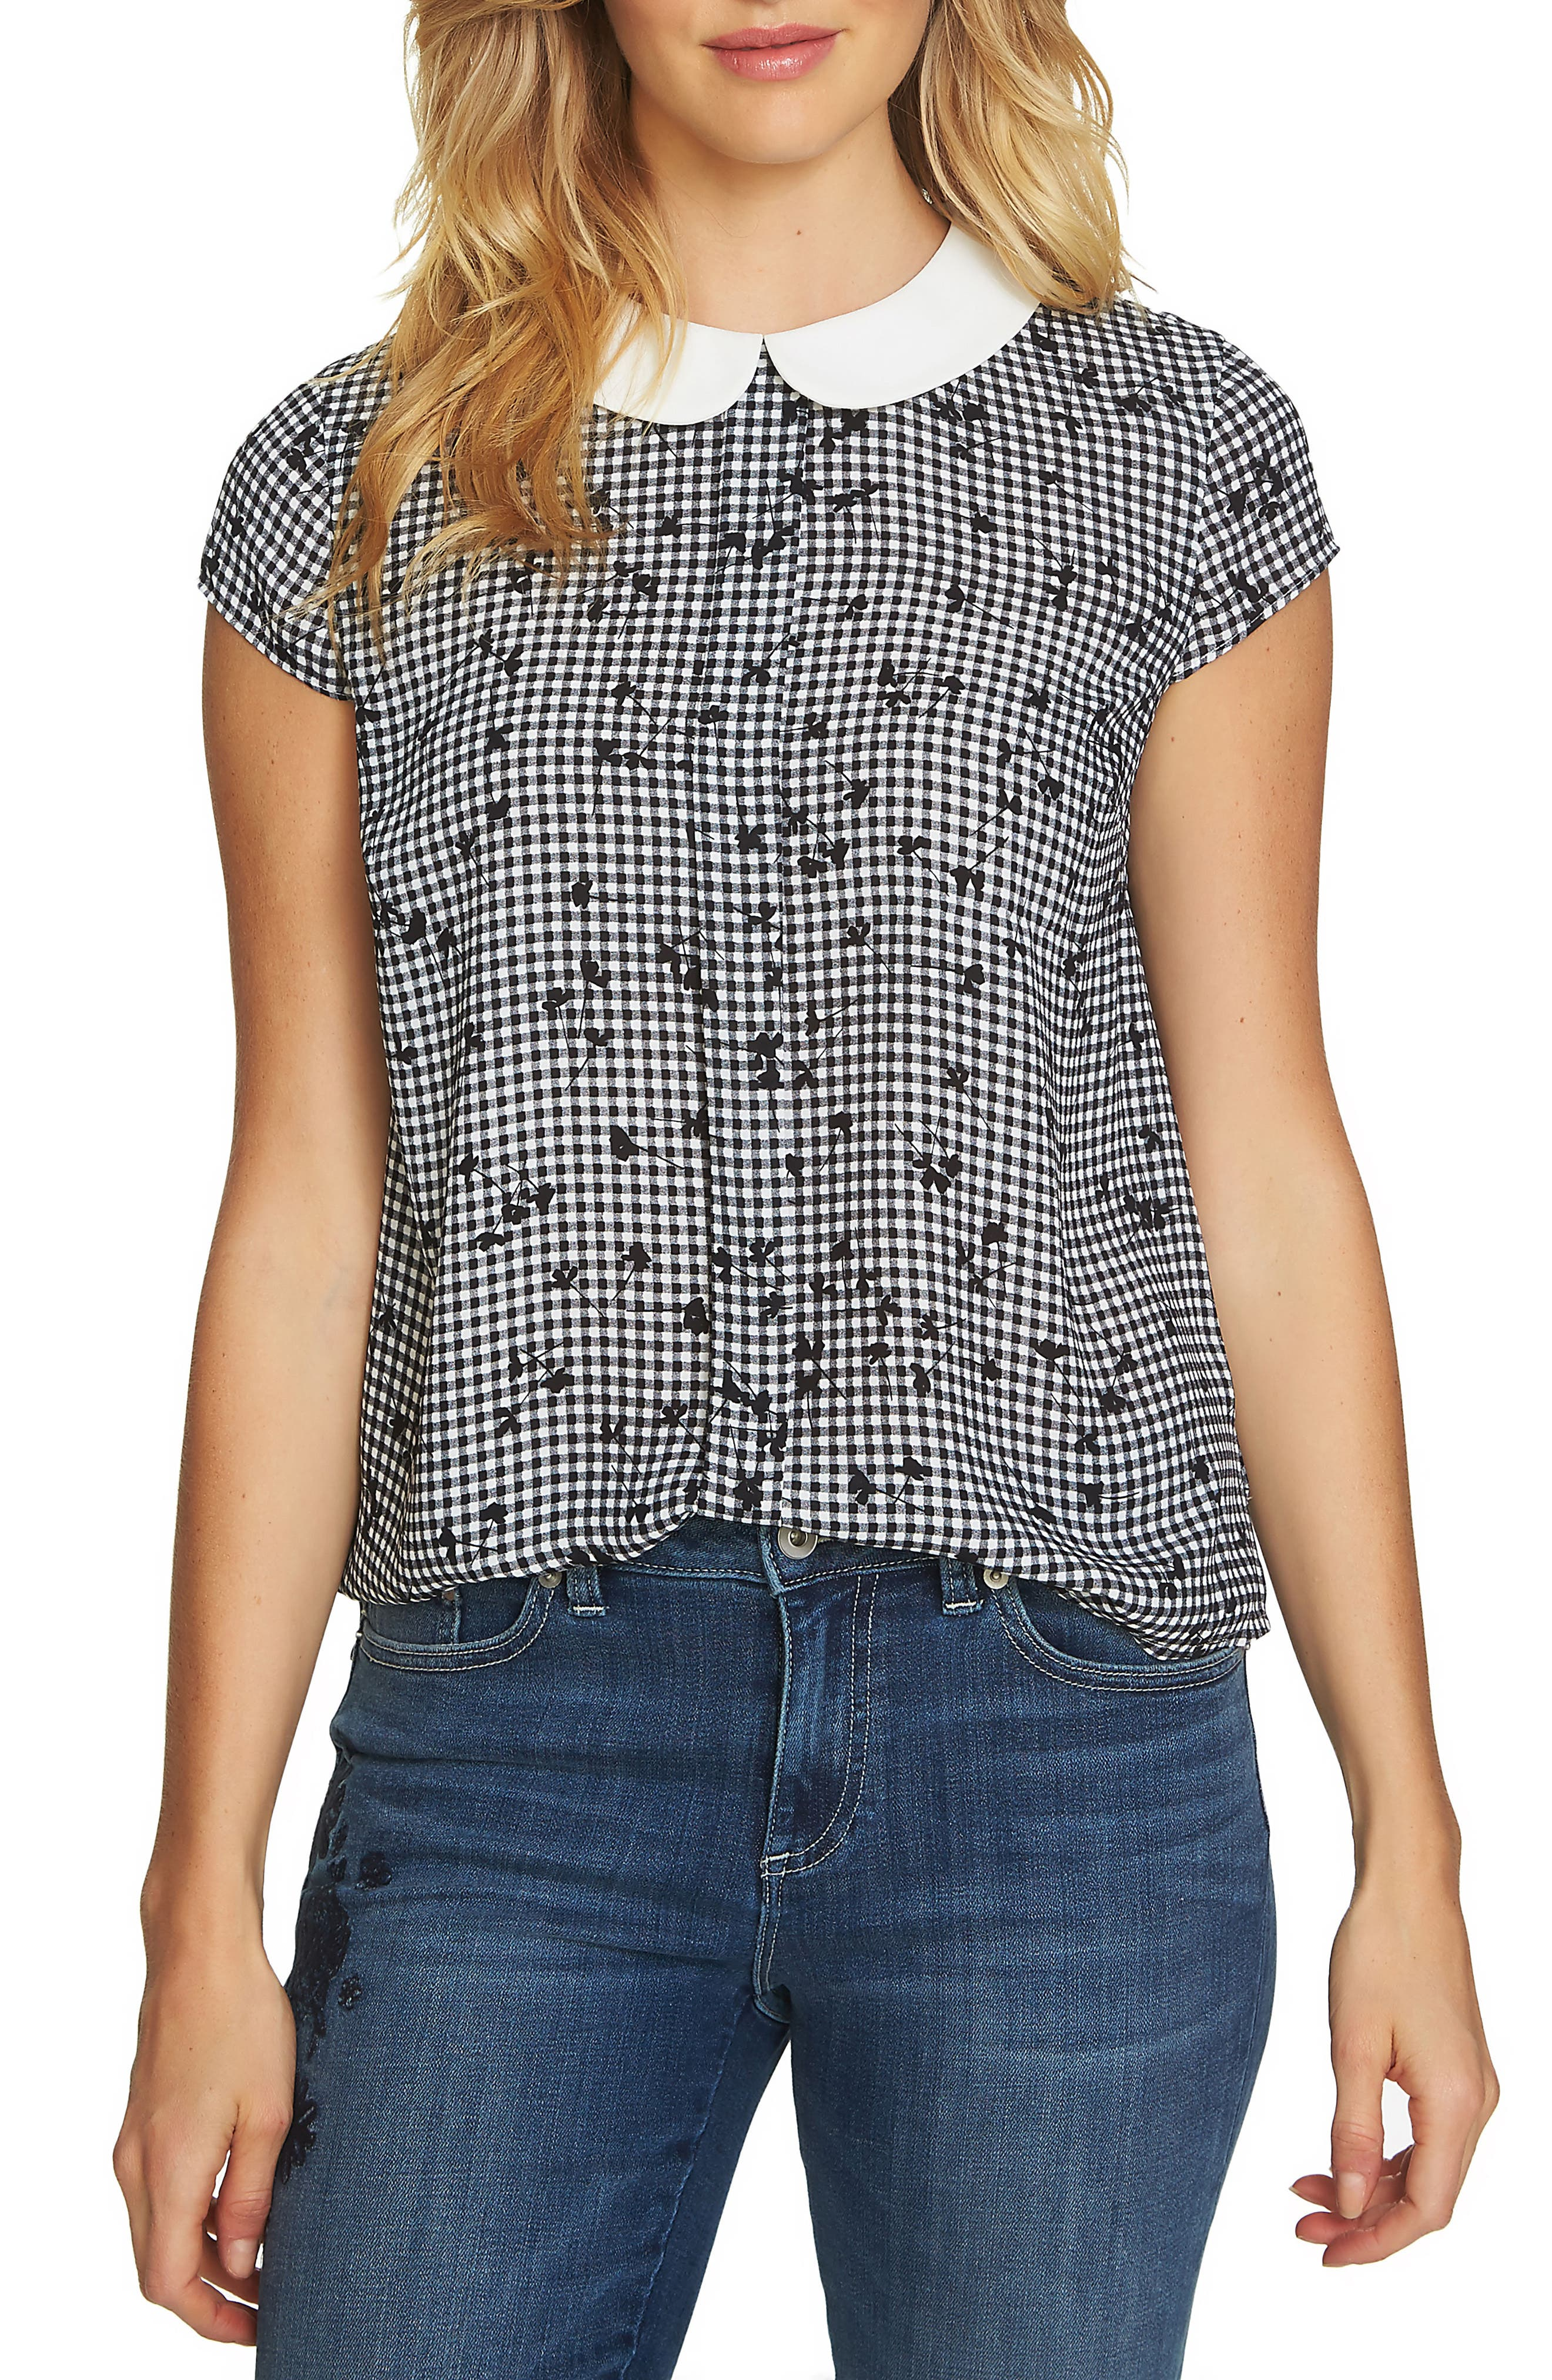 Main Image - CeCe Simple Check Ditsy Blouse